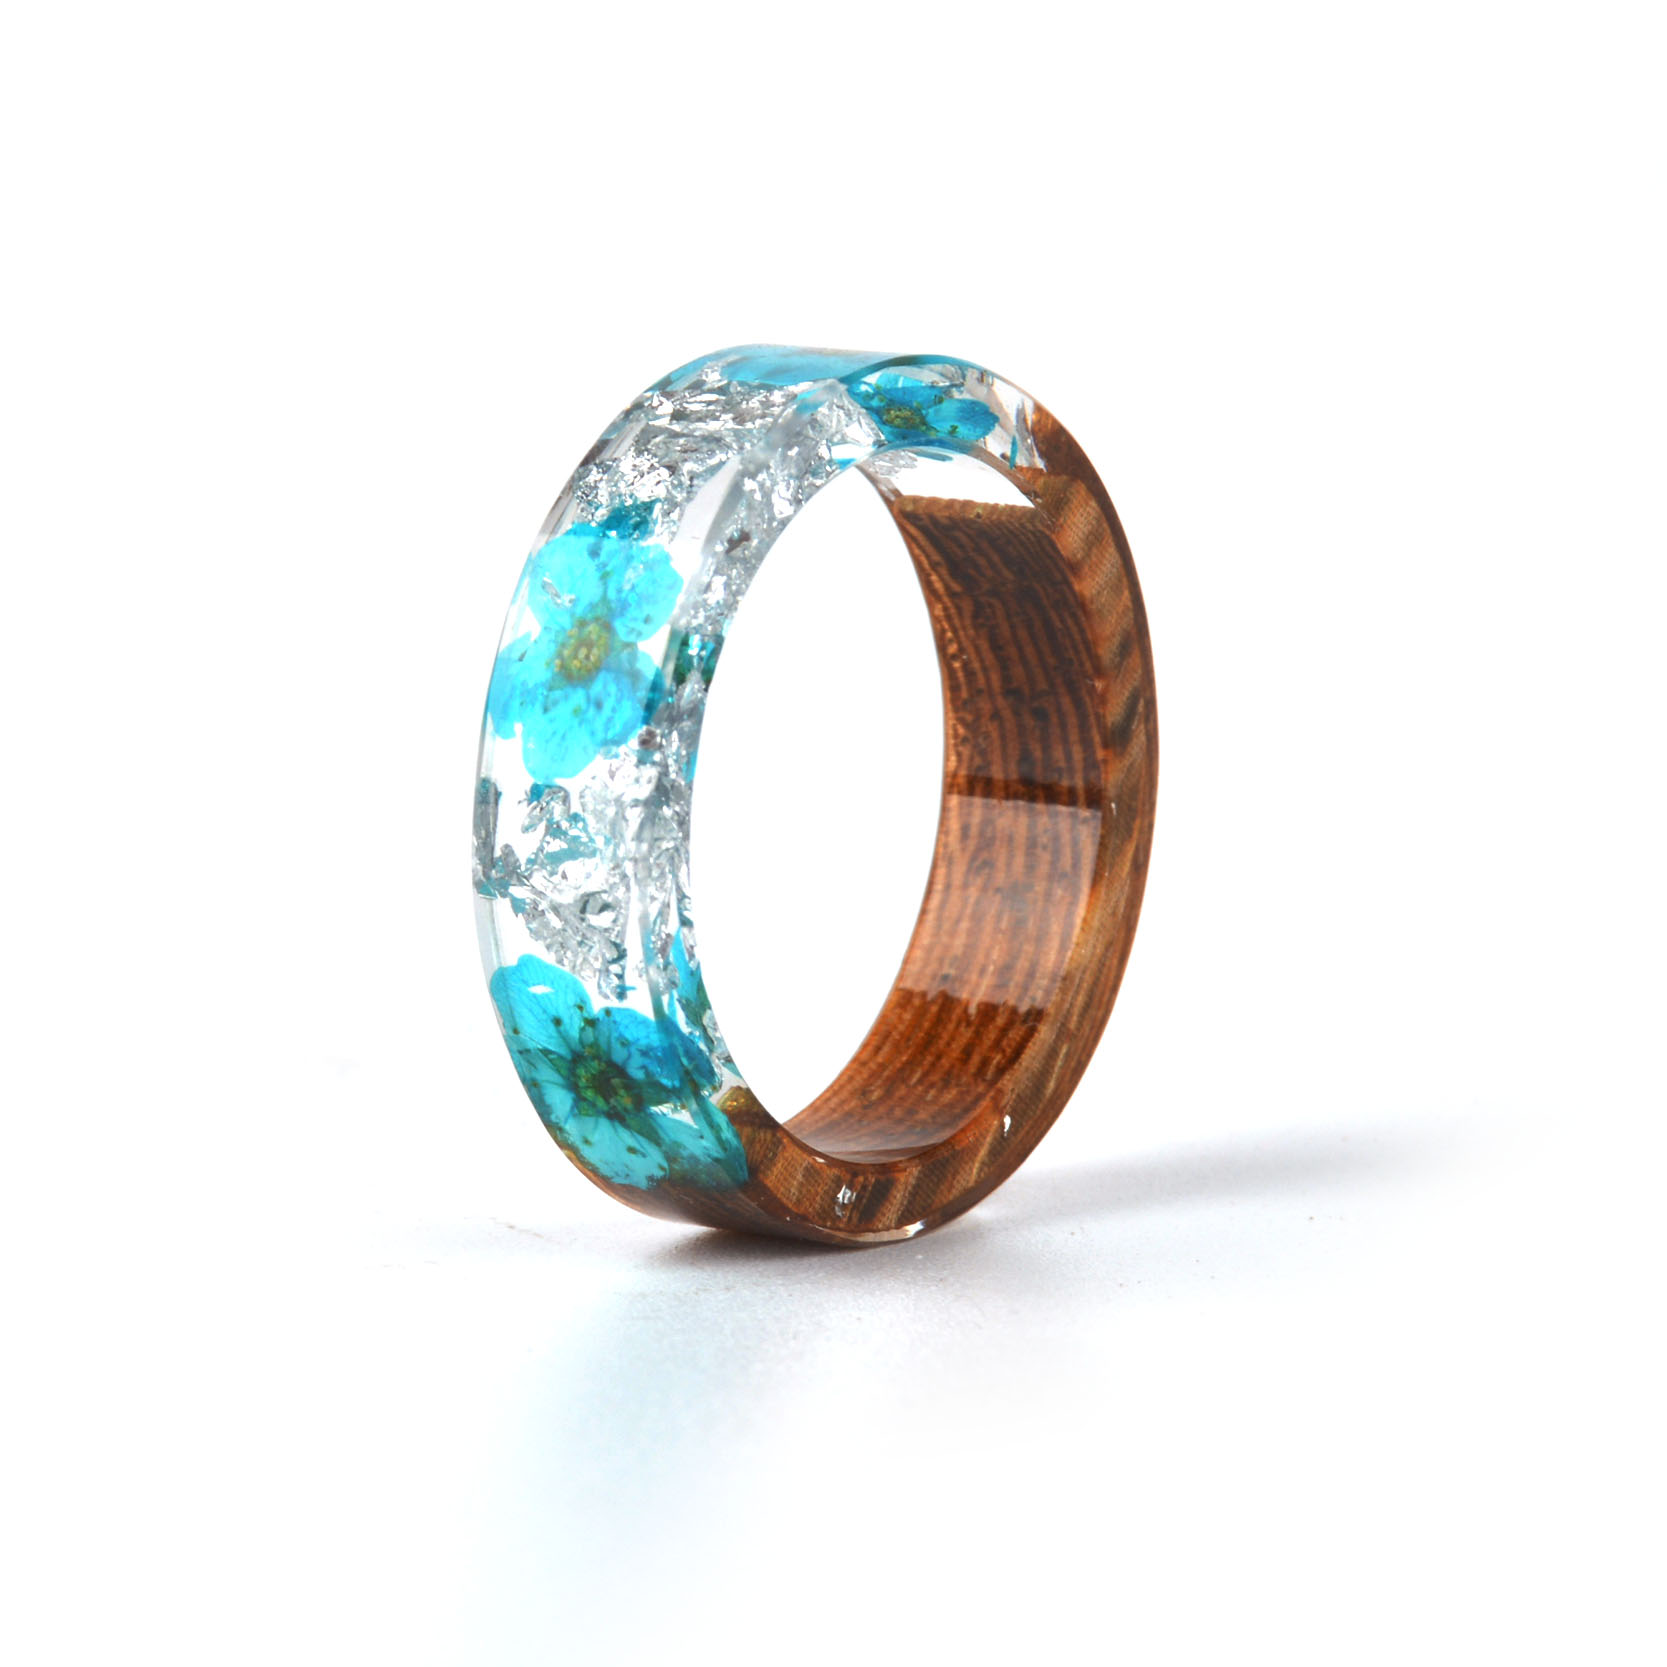 HTB1cONfasfrK1RjSszcq6xGGFXaK - Hot Sale Handmade Wood Resin Ring Dried Flowers Plants Inside Jewelry Resin Ring Transparent Anniversary Ring for Women